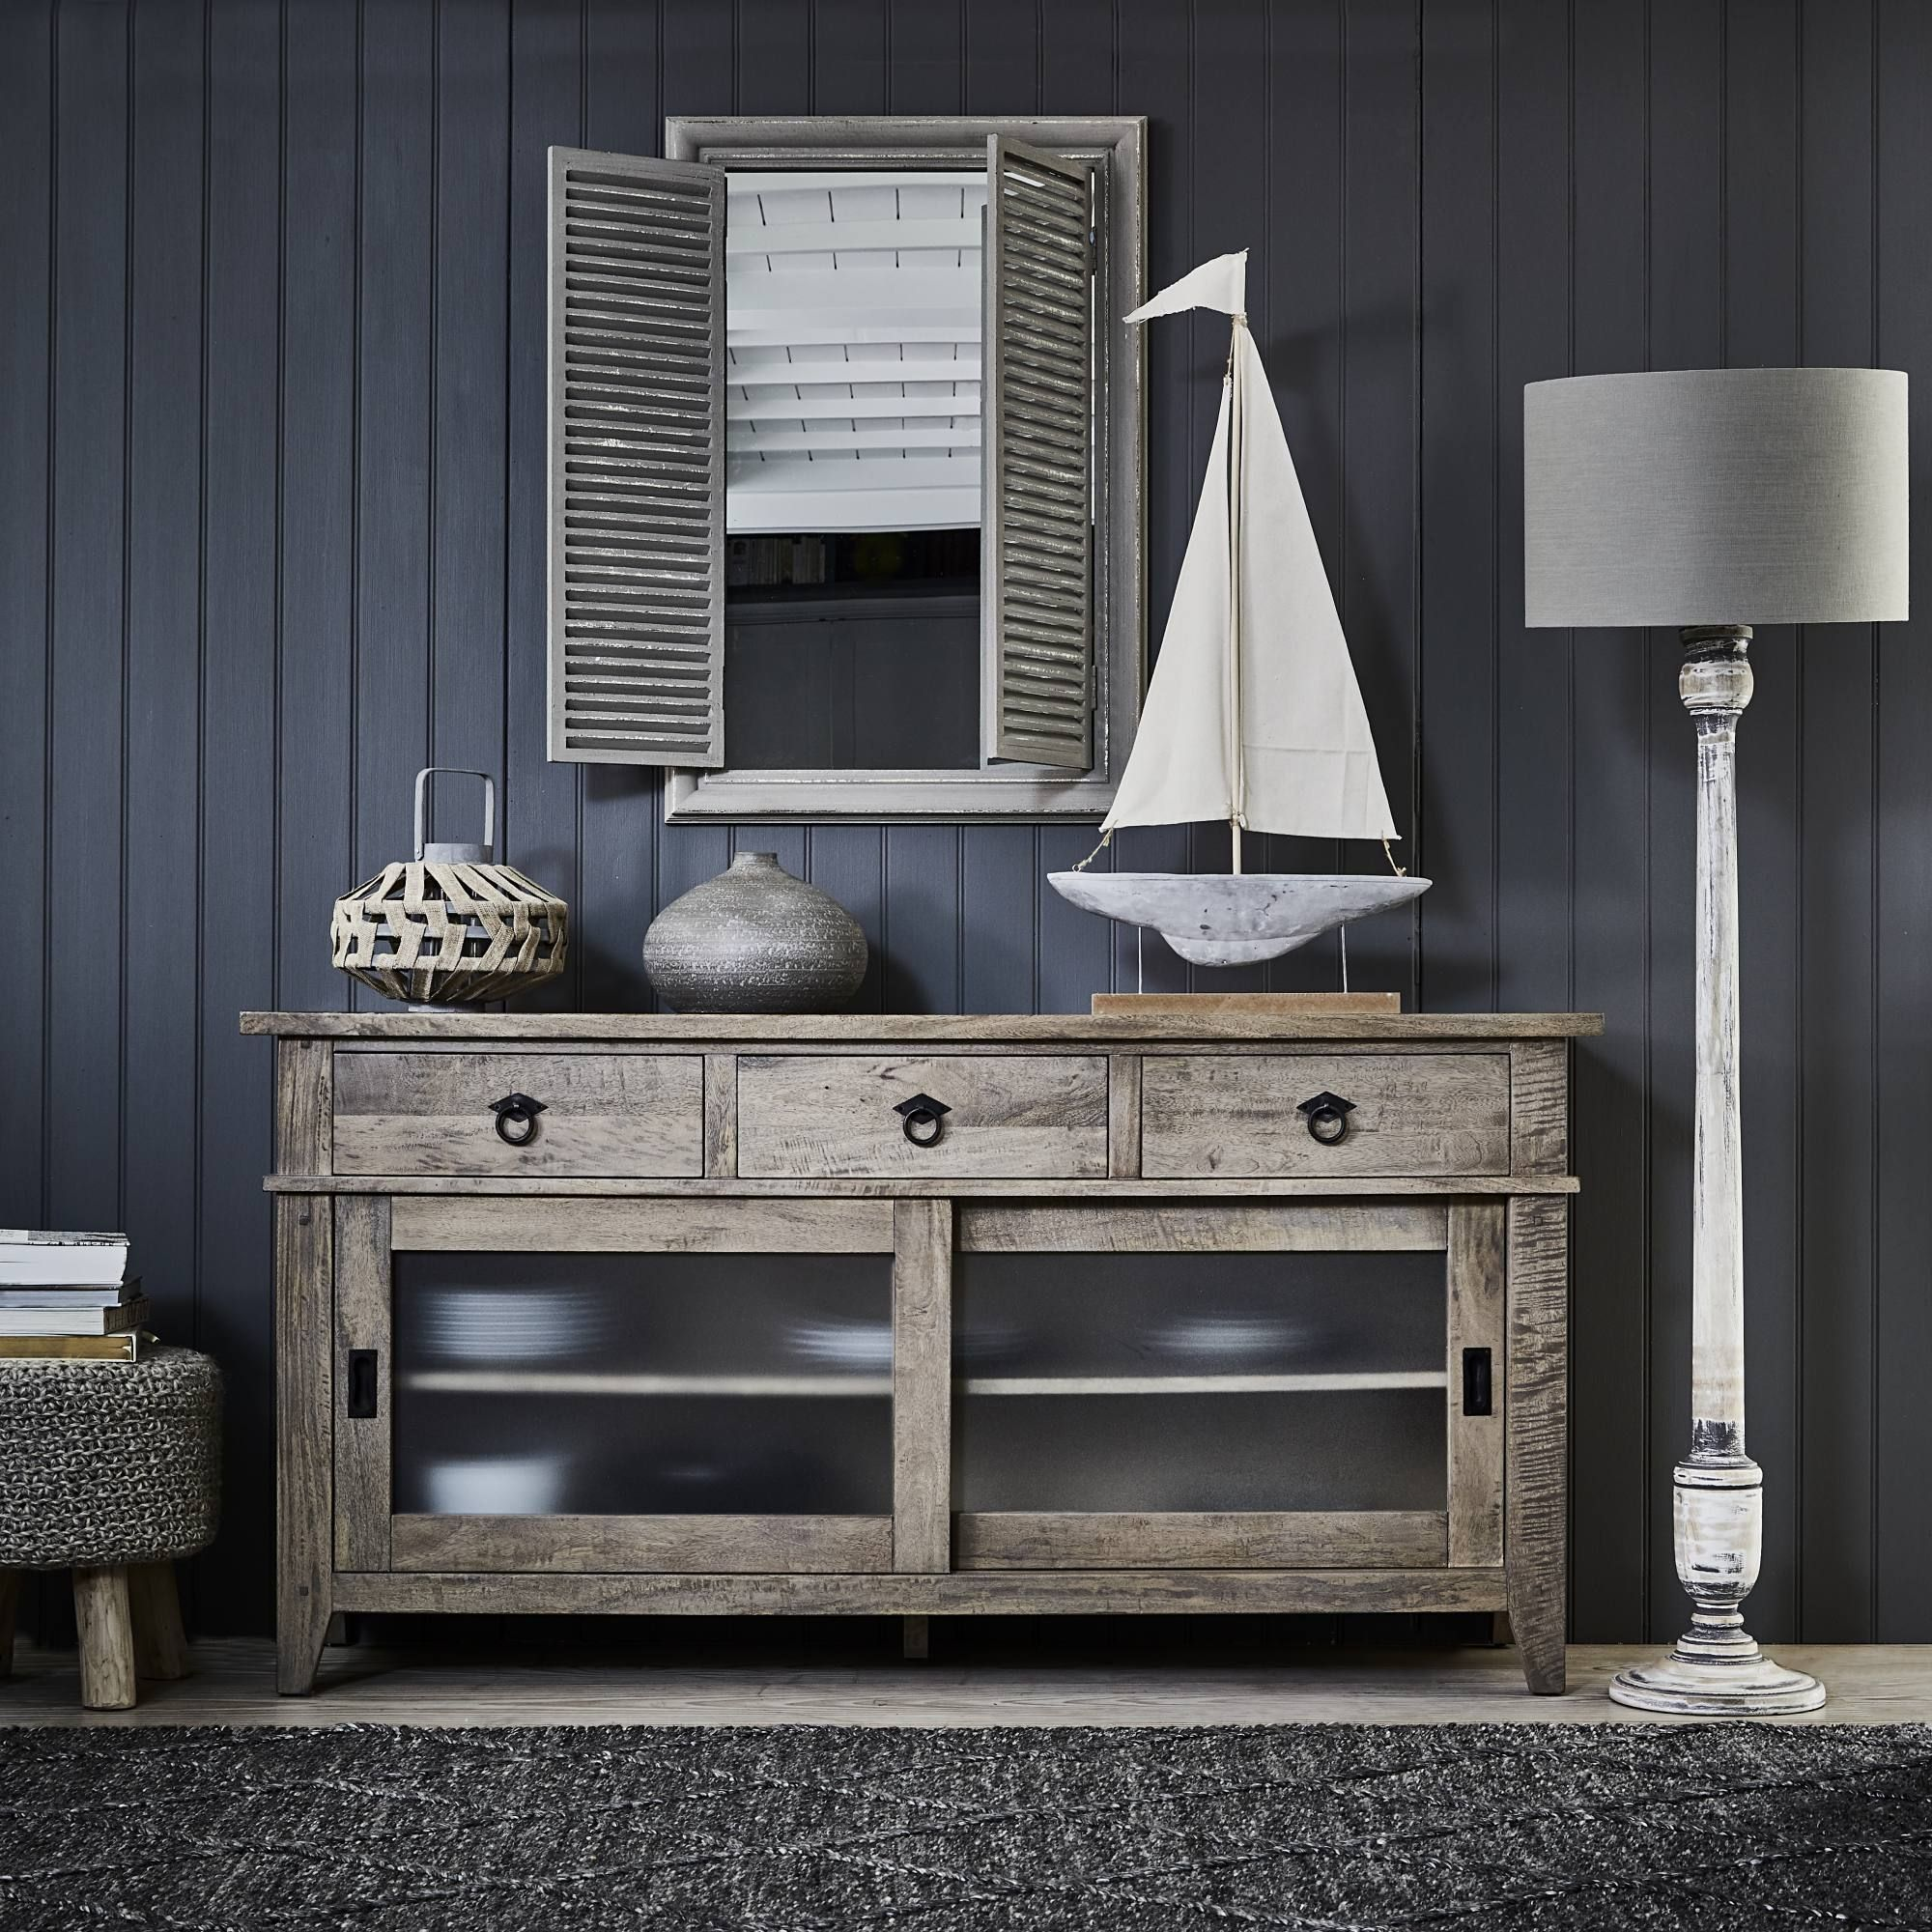 Brimming with rustic style the hancock large sideboard is perfect